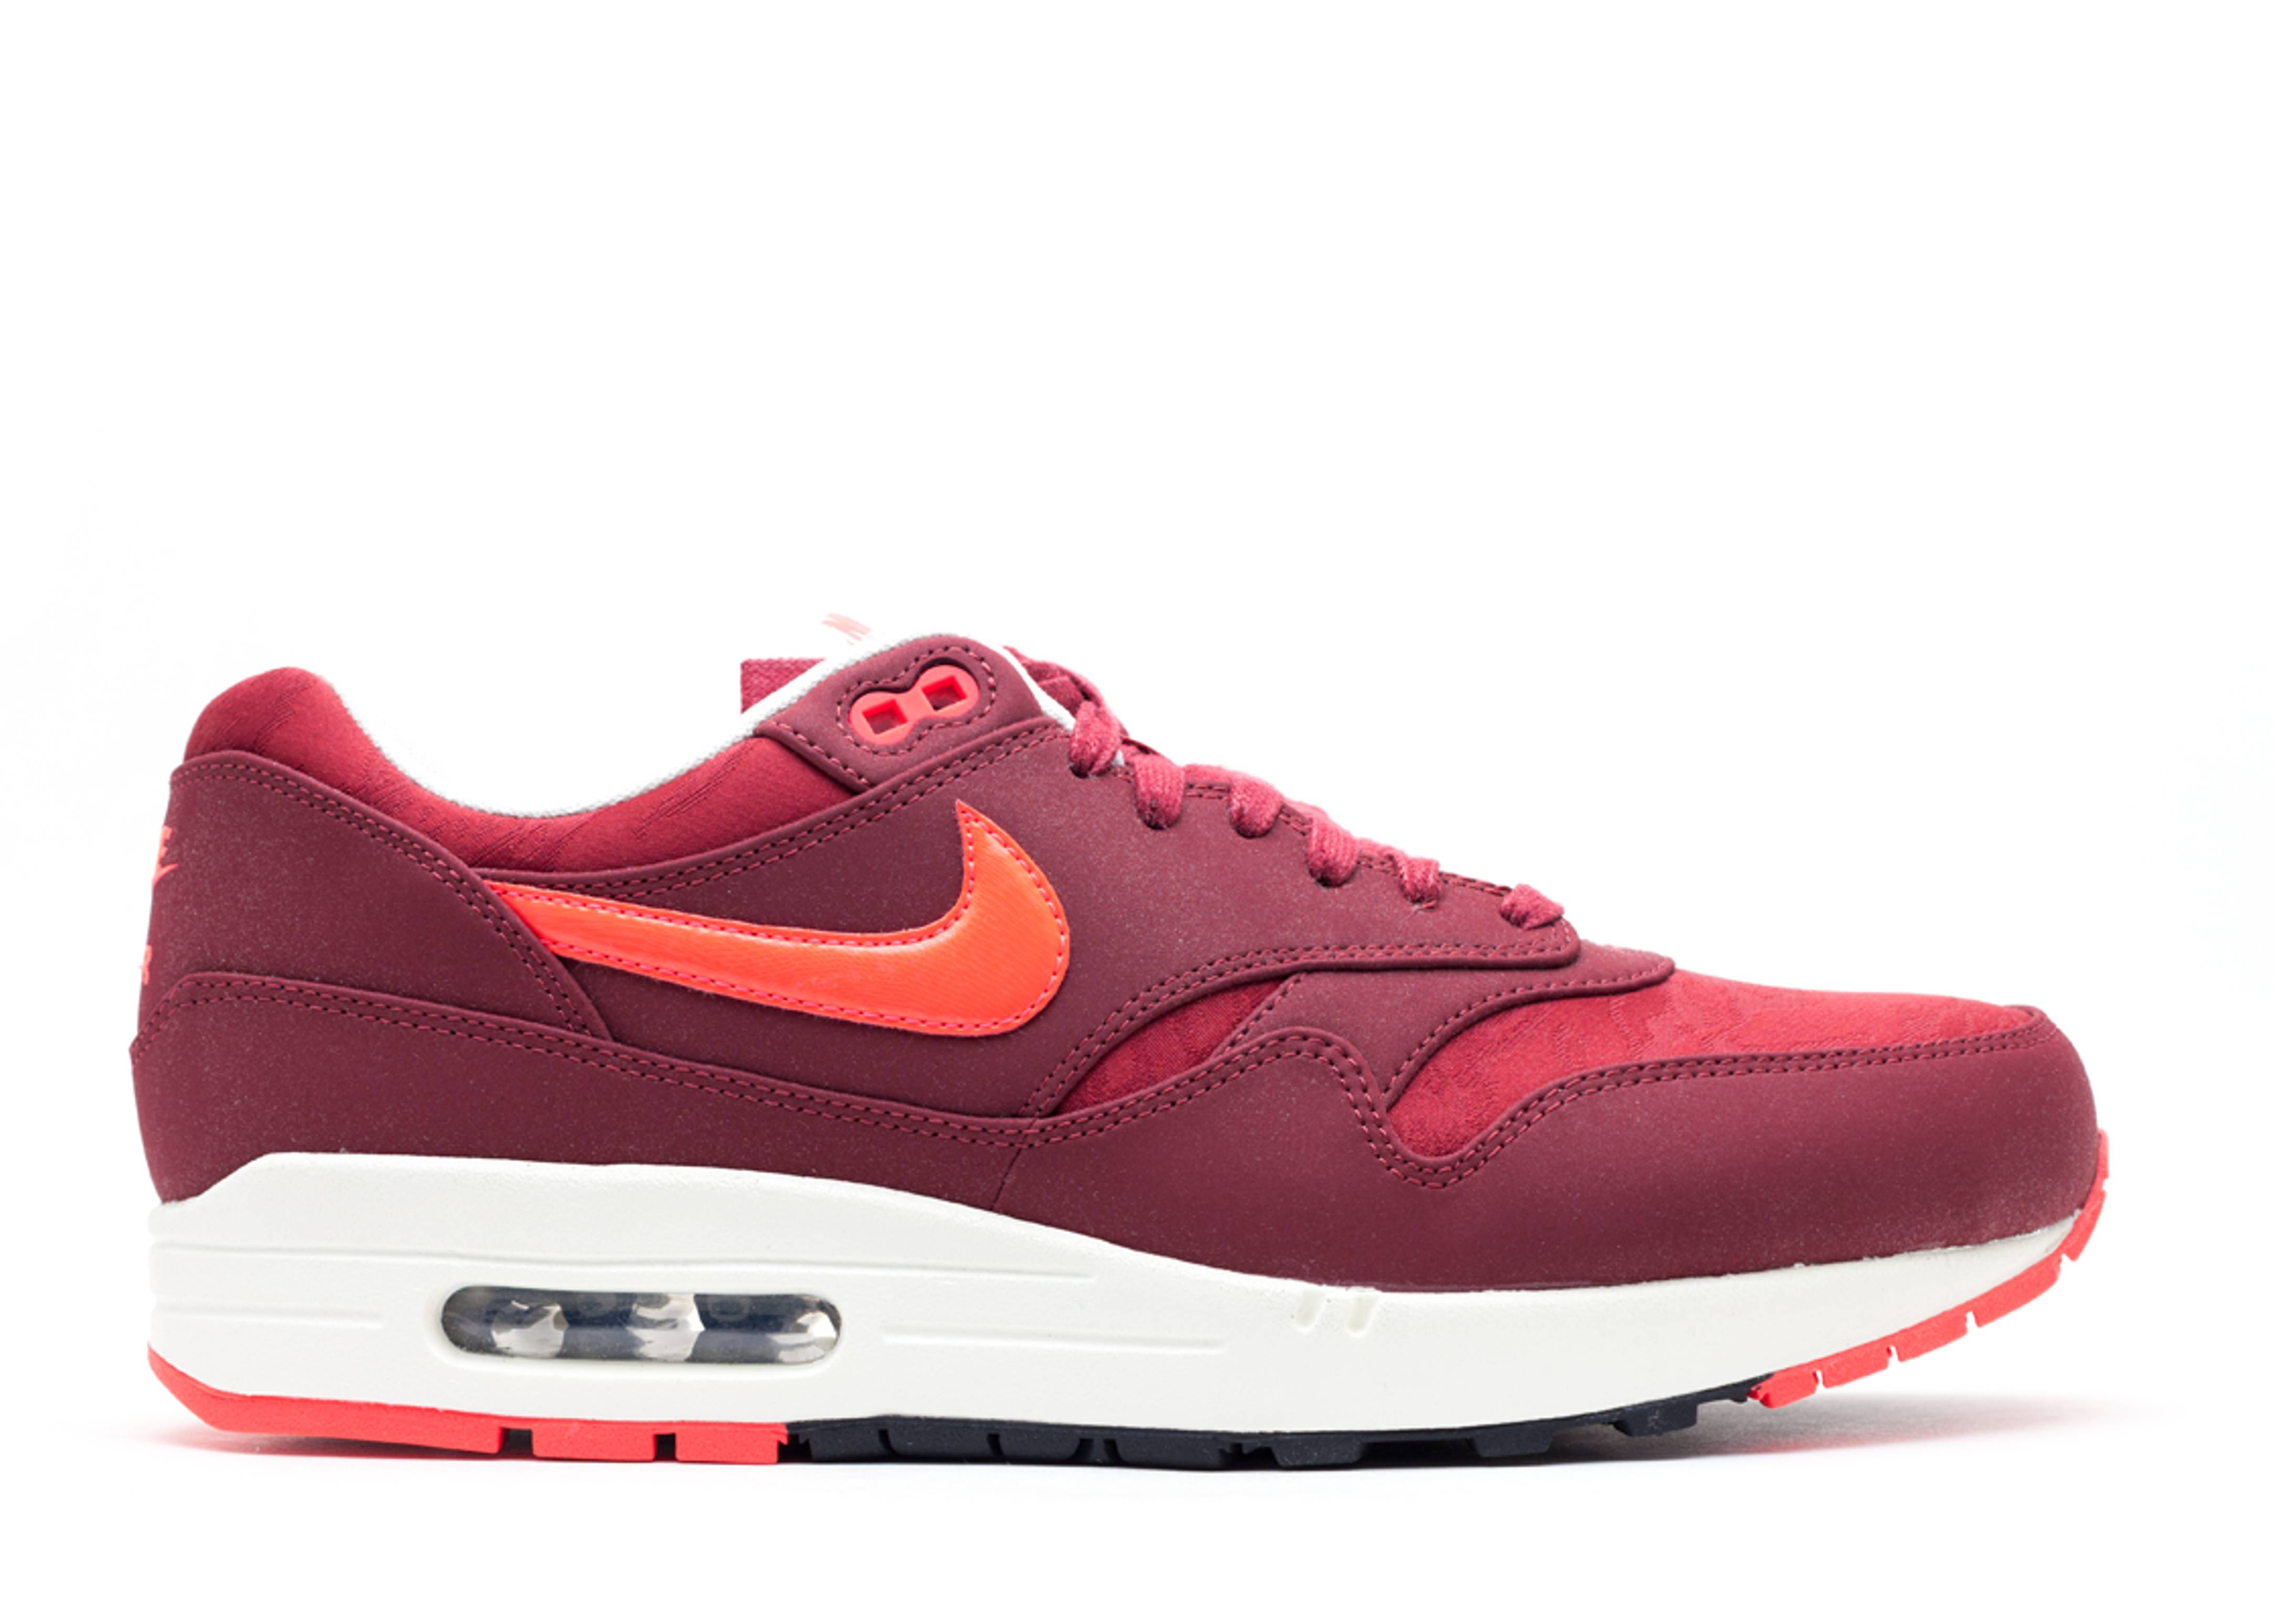 Mens 2013 Nike Air Max 1 PRM Team Red/Atomic Red Shoes Sneakers Size 10